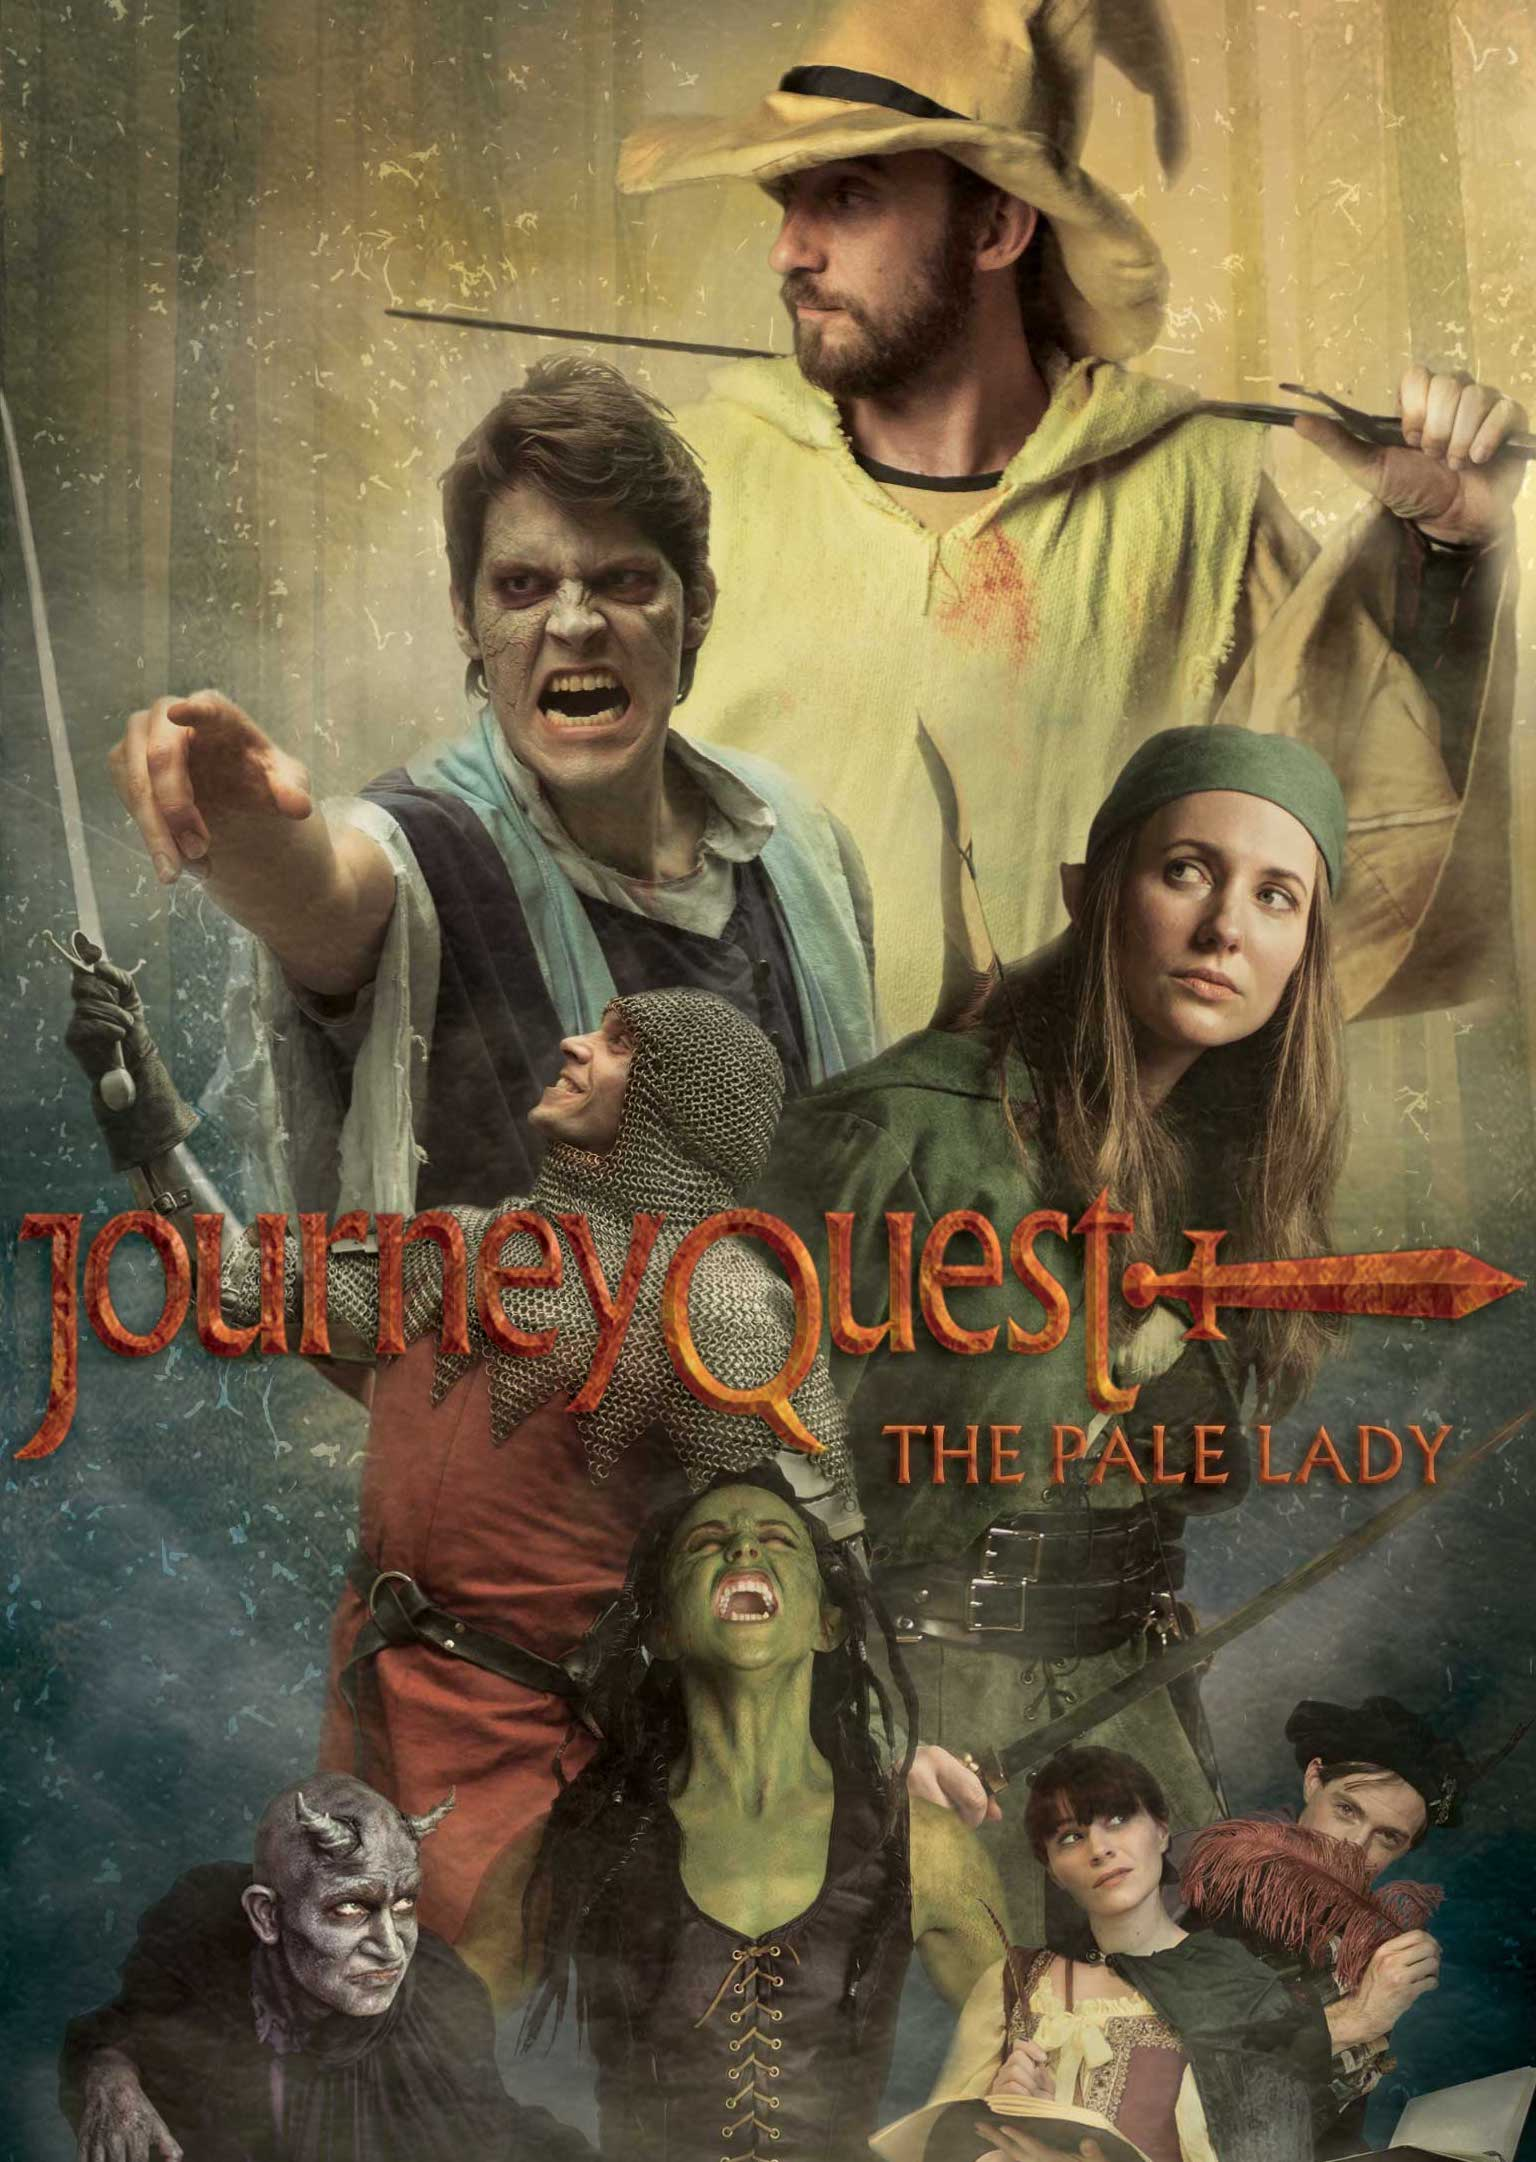 JourneyQuest Season 3 brings the ongoing story of Perf, stuck with the Sword of fighting, a quest problem that he never asked for, and two competing bards (Fran Kranz, Emilie Rommel Shimkus) battle for ownership of the world's most important epic.